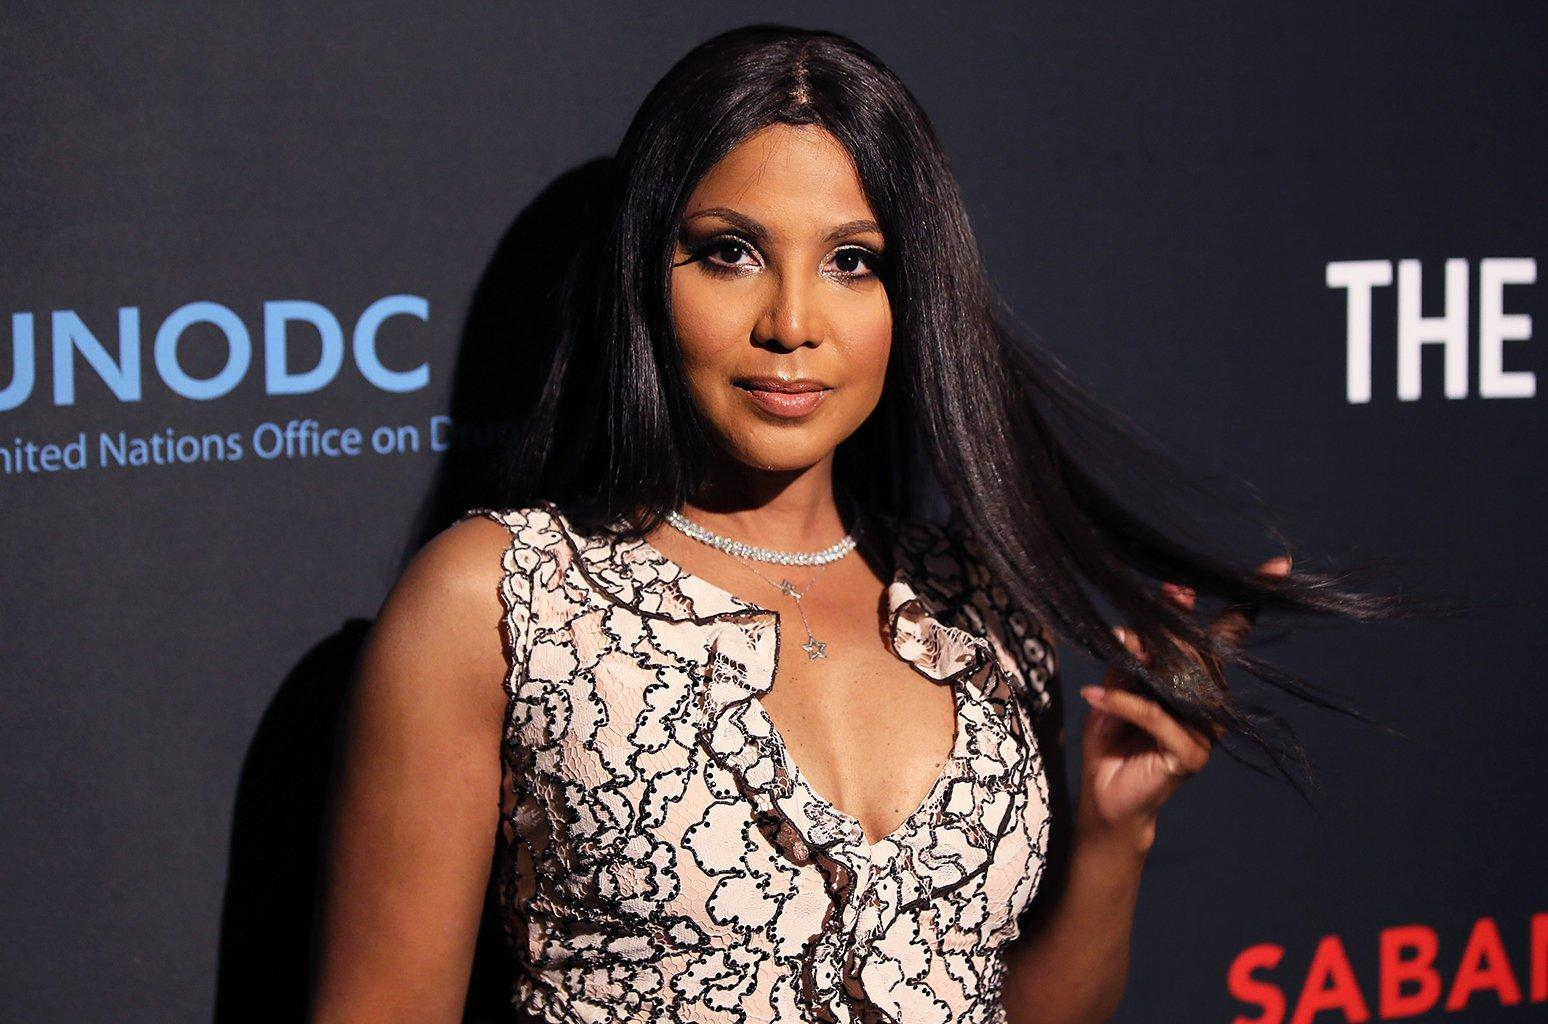 Toni Braxton Flaunts Her New Blonde Short Hair, While Rocking This Red Dress